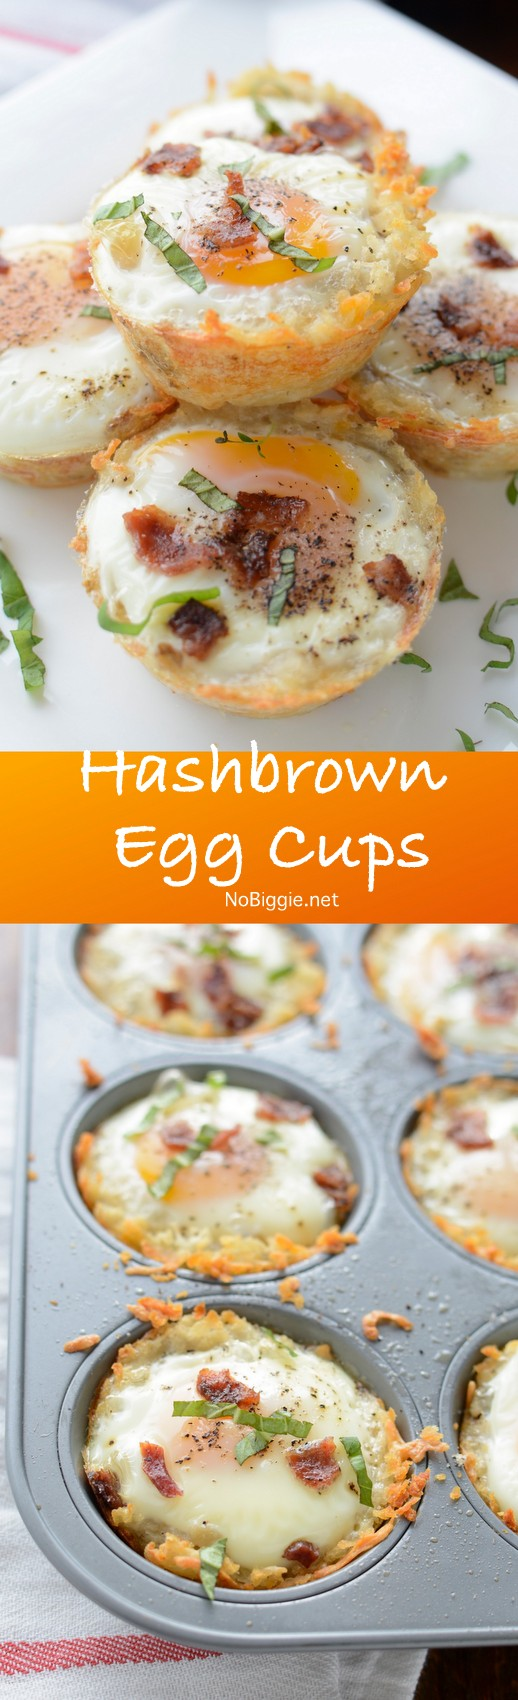 Hashbrown Egg Cups - such a great breakfast to feed a crowd. You can make most of it a day ahead and just bake the eggs right before serving. #eggcups #brunchrecipes #brunch #breakfast